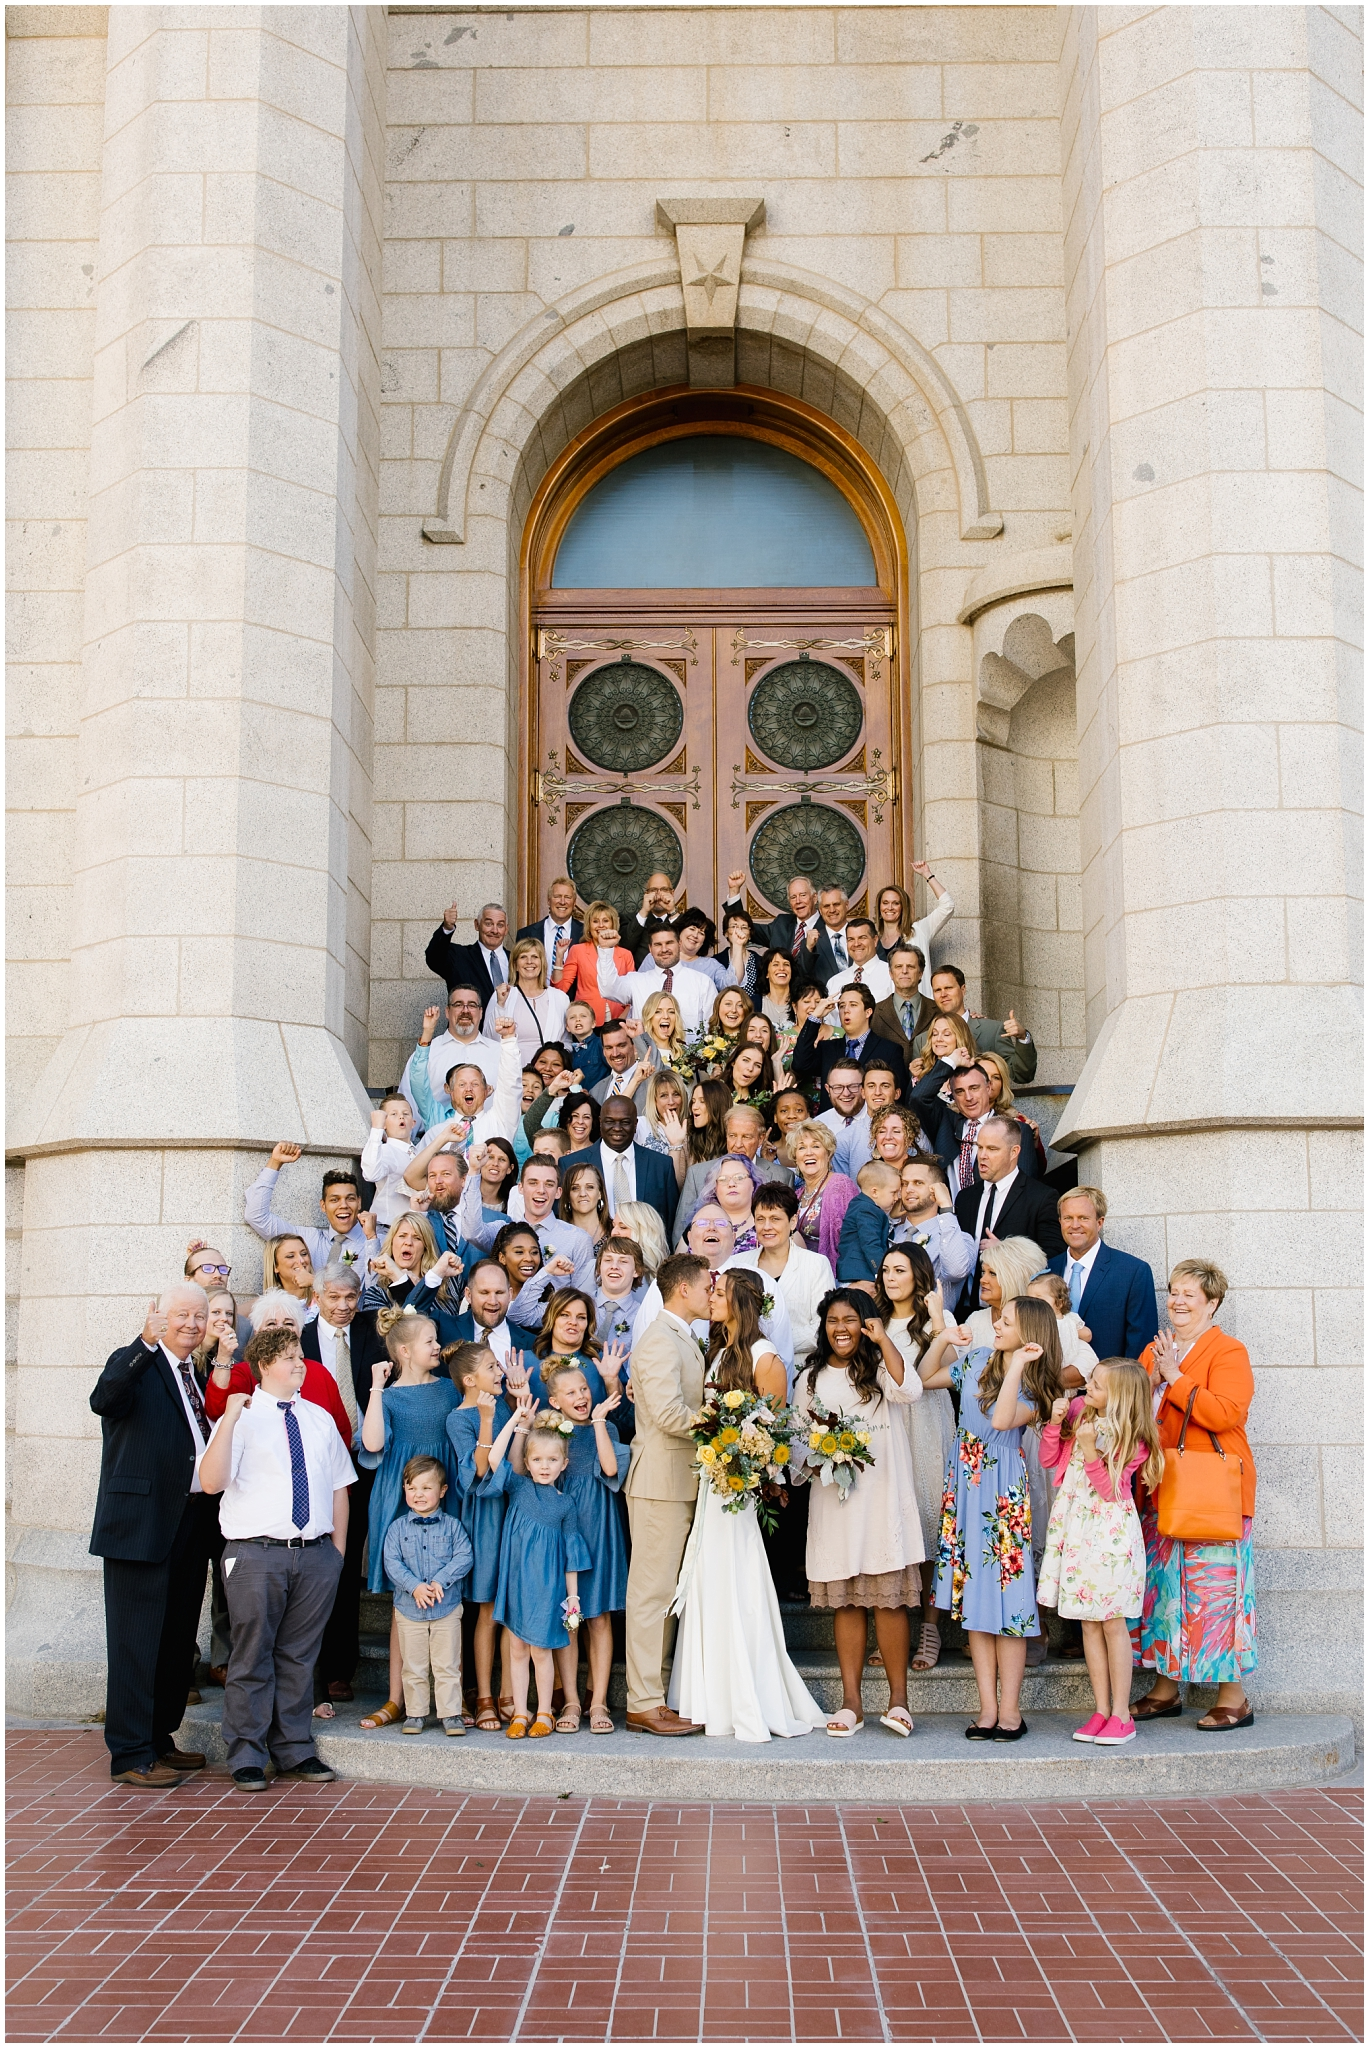 JC-Wedding-76_Lizzie-B-Imagery-Utah-Wedding-Photographer-Park-City-Salt-Lake-City-Temple-Joseph-Smith-Memorial-Building-Empire-Room.jpg